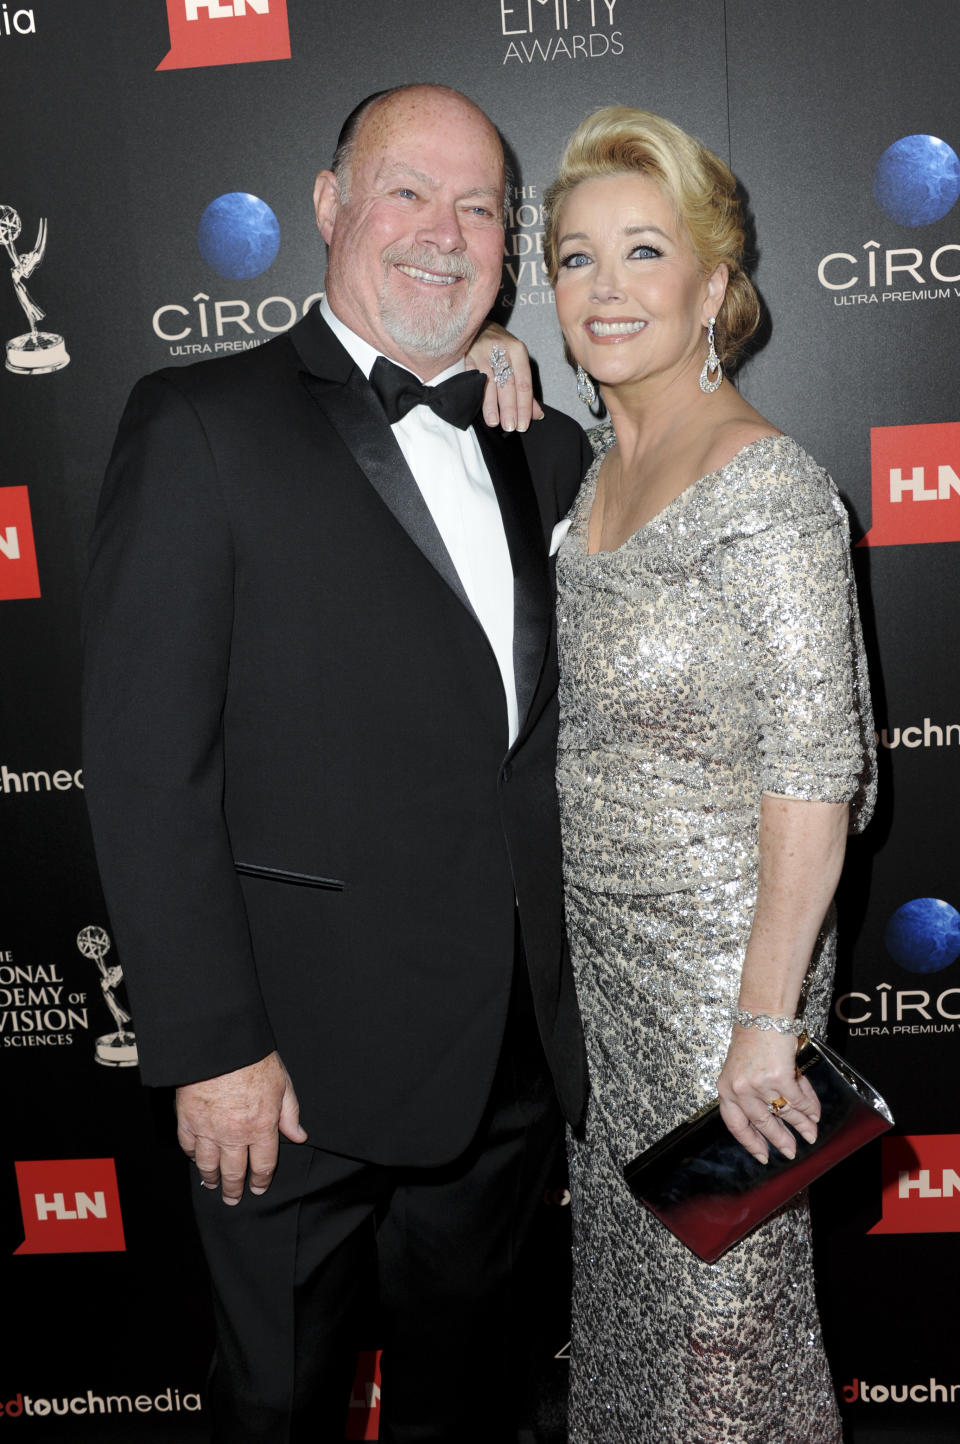 BEVERLY HILLS, CA - JUNE 16:  Ed Scott and actress Melody Thomas Scott attends 40th Annual Daytime Entertaimment Emmy Awards - Arrivals at The Beverly Hilton Hotel on June 16, 2013 in Beverly Hills, California.  (Photo by Allen Berezovsky/WireImage)